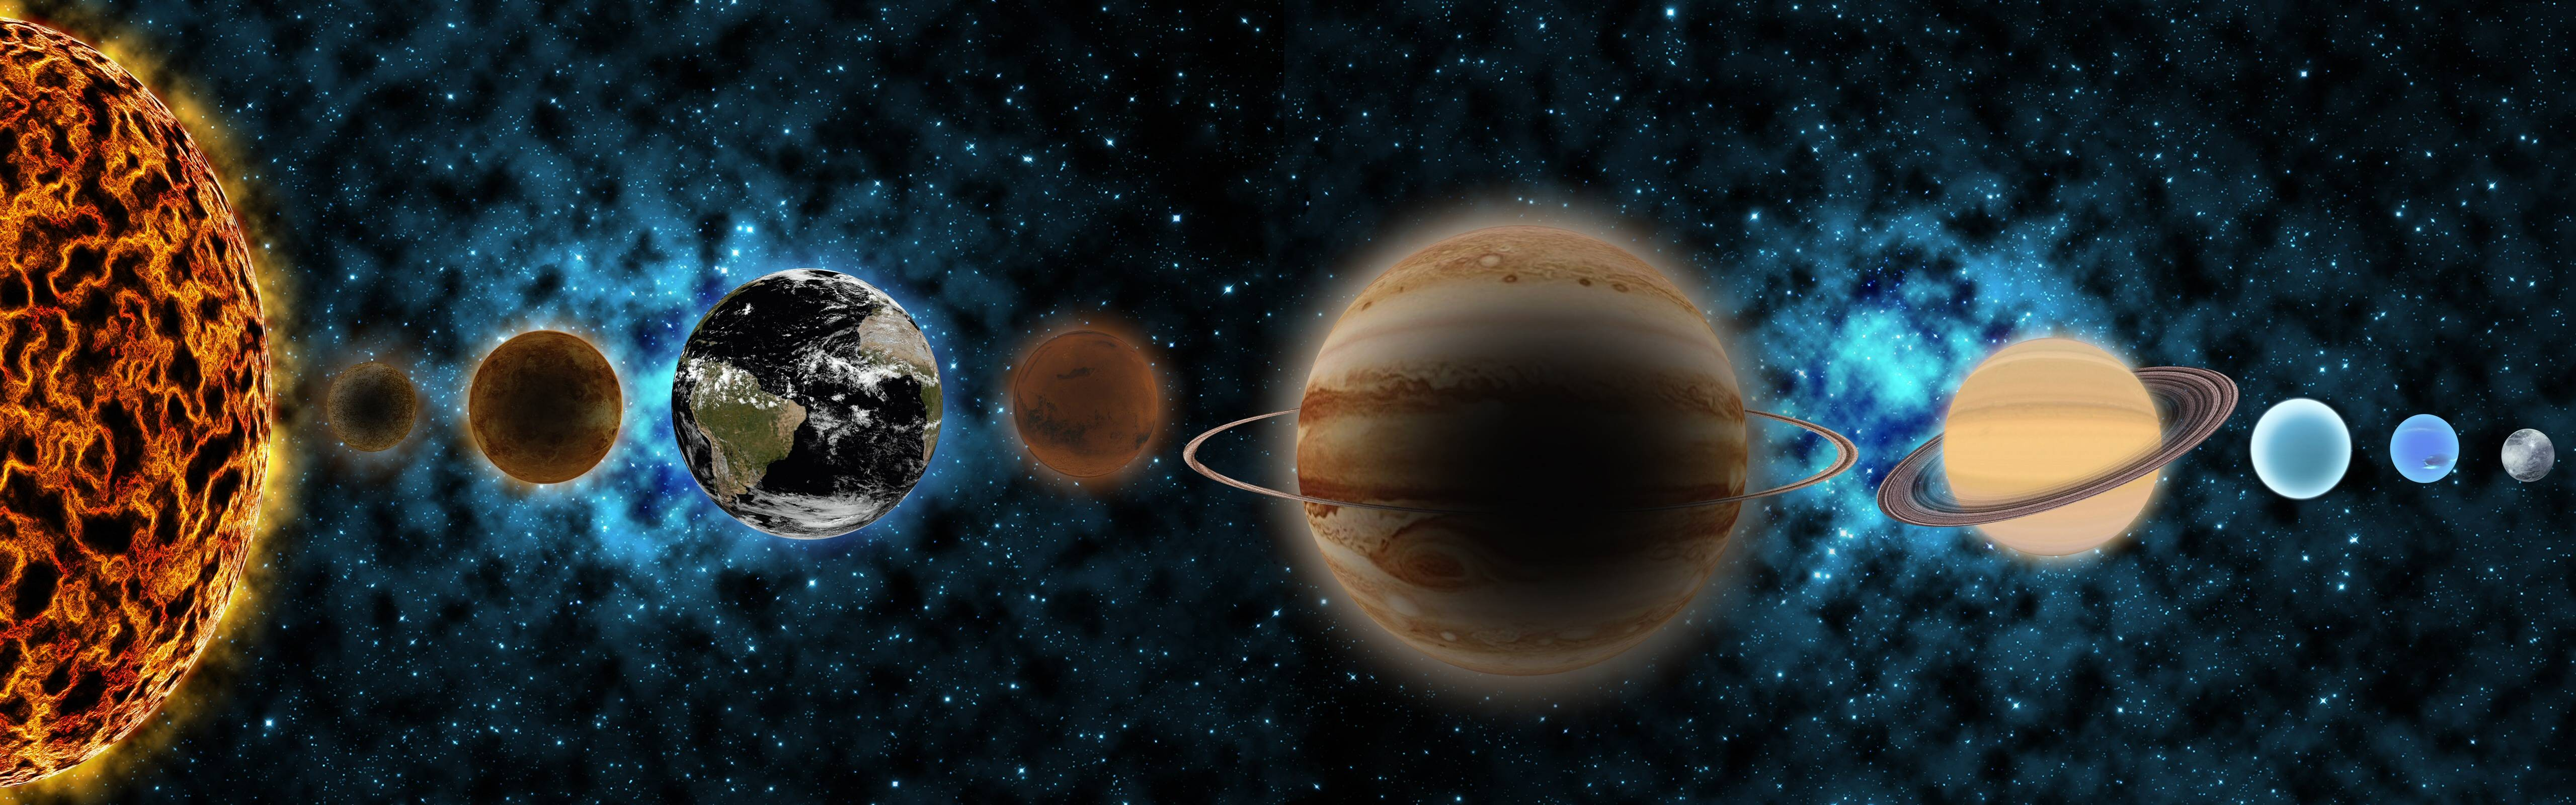 Solar System Wallpaper 36 60128 Images HD Wallpapers| Wallpapers ...